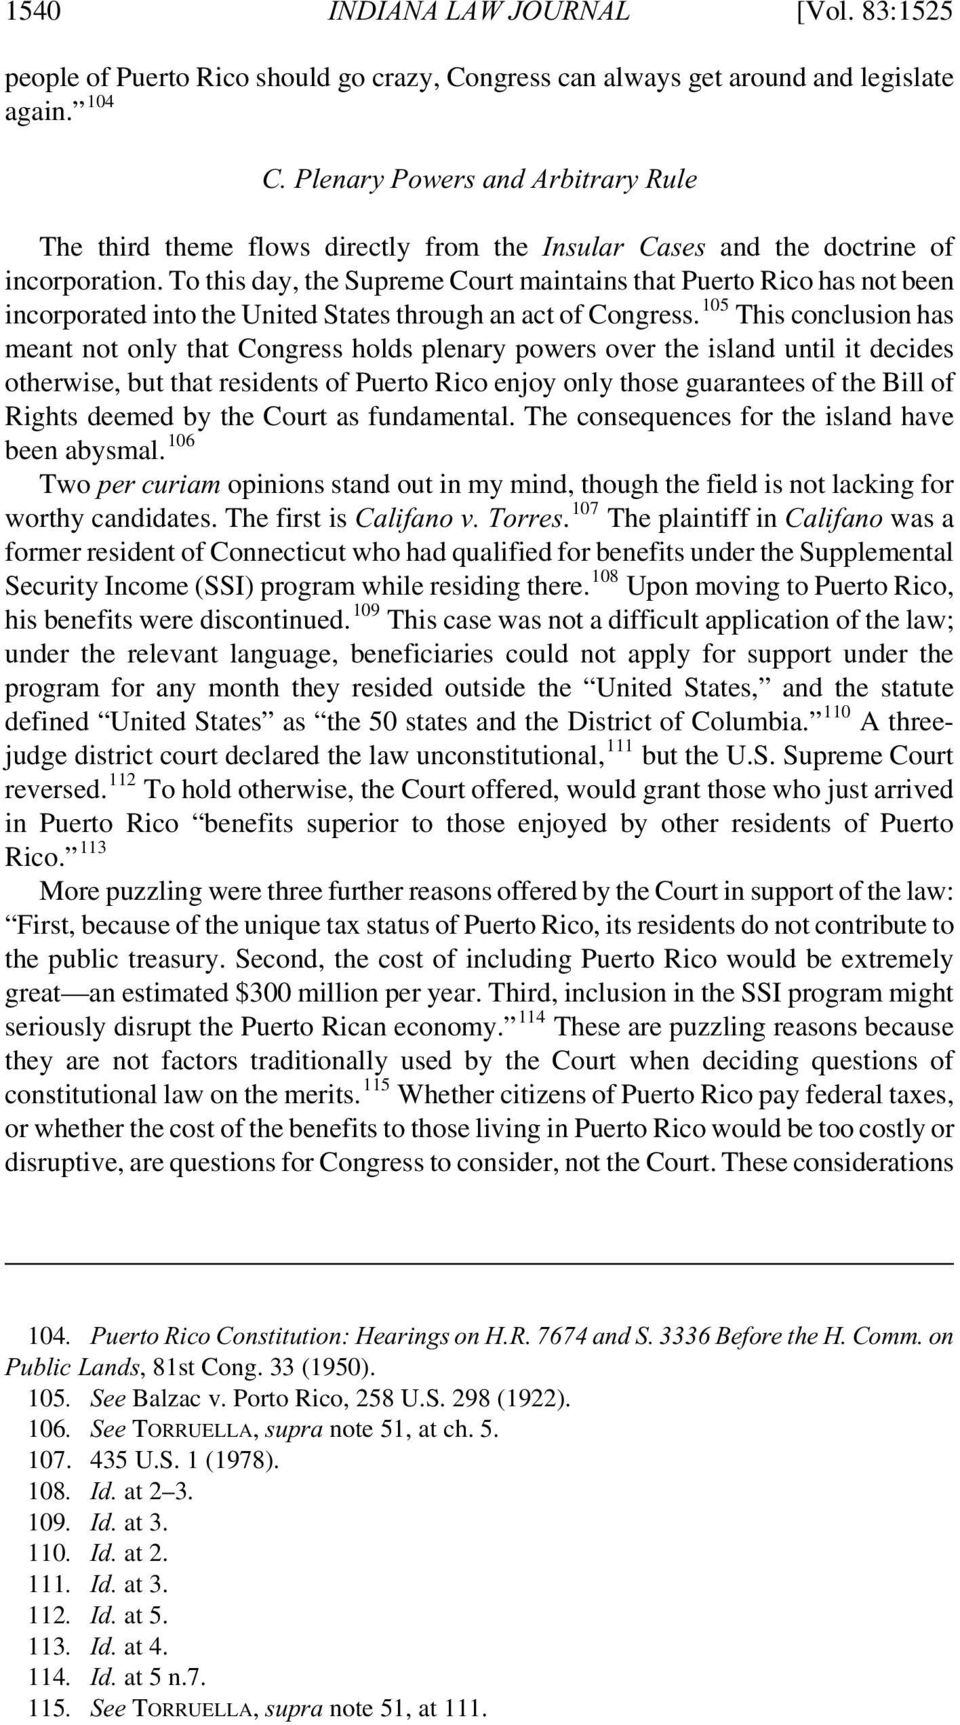 To this day, the Supreme Court maintains that Puerto Rico has not been incorporated into the United States through an act of Congress.